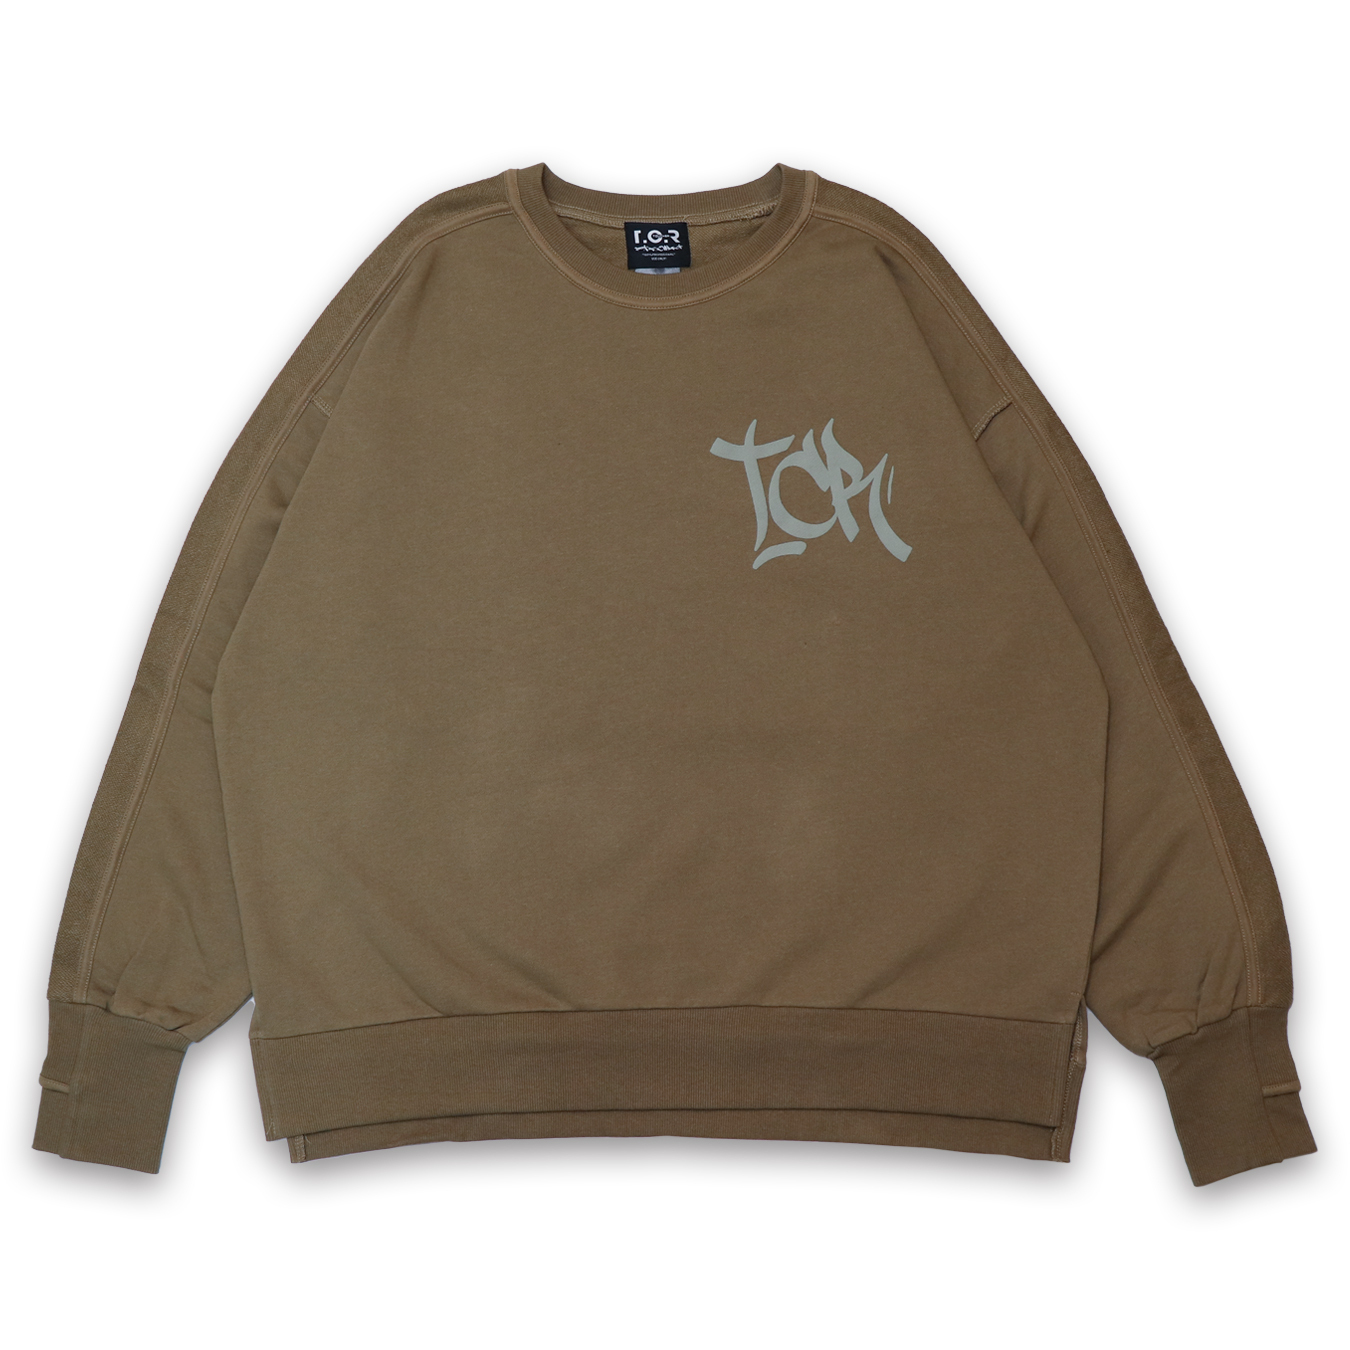 T.C.R FOAM LOGO CREW SWEAT - WASHED KHAKI